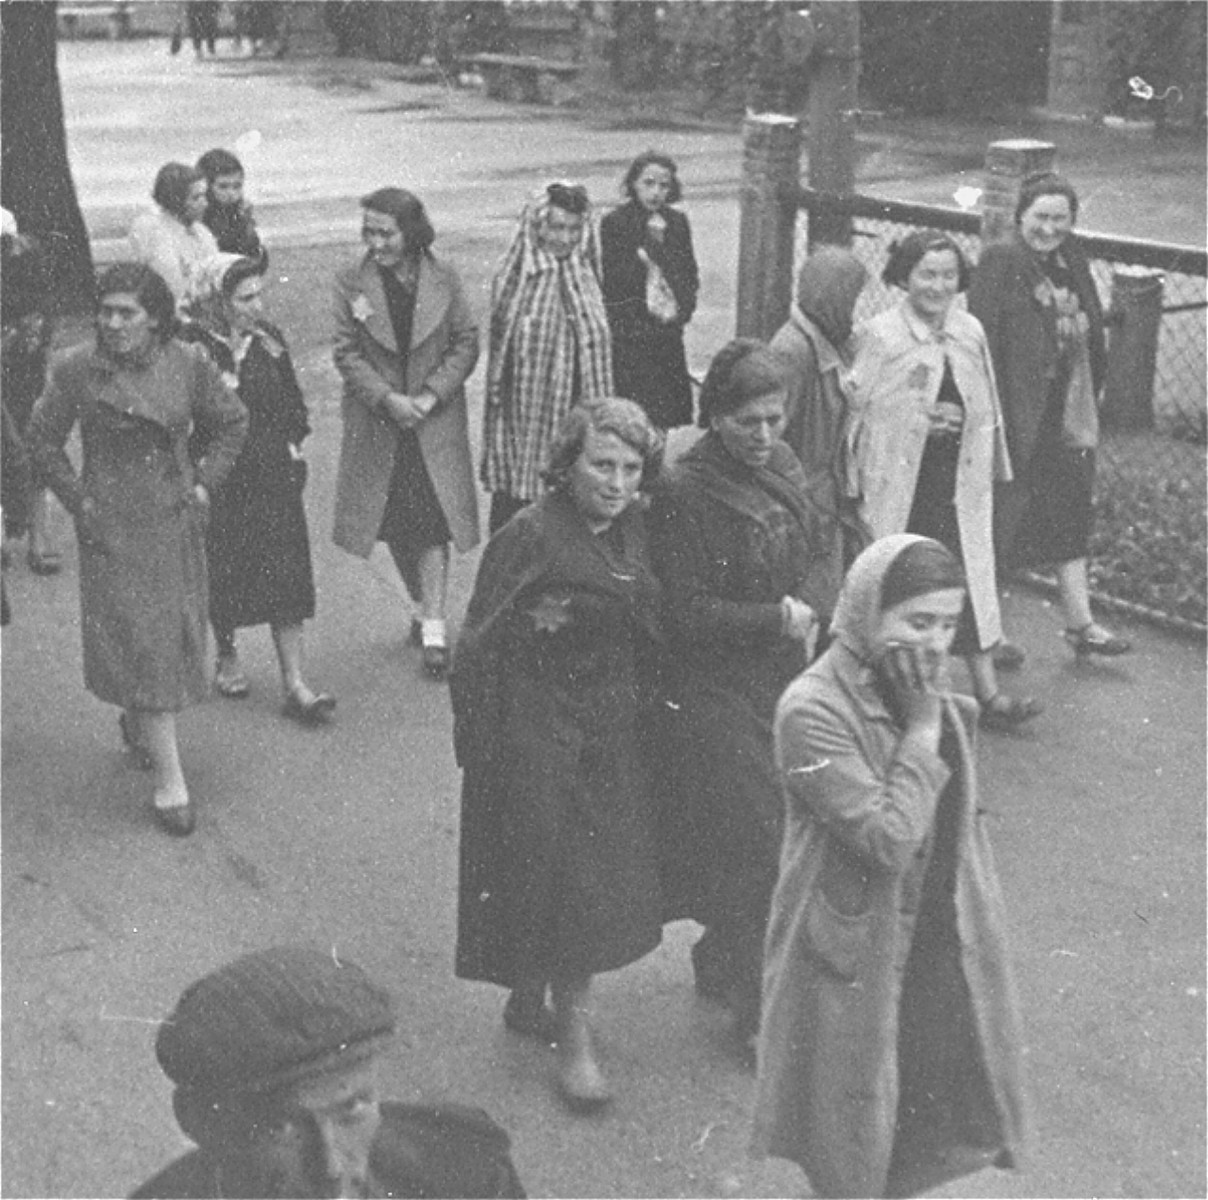 Jewish women wearing yellow stars are walking in the street, near a park.   This photo was taken before the establishment of the ghetto.